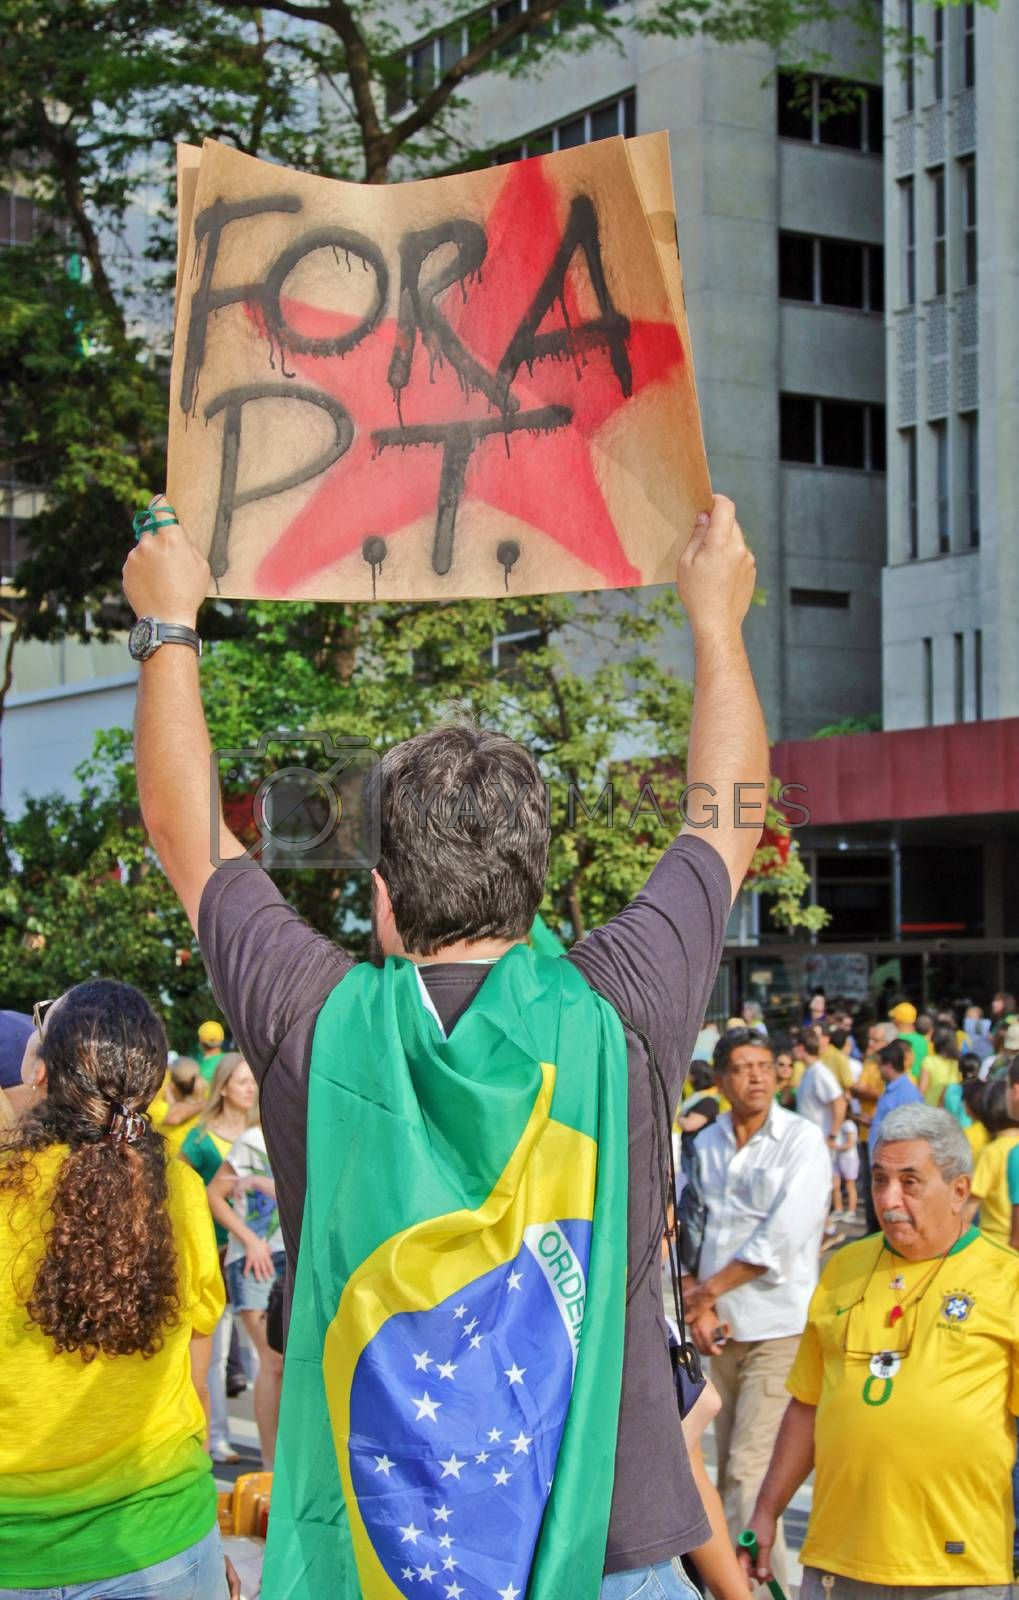 SAO PAULO, BRAZIL August 16, 2015: An unidentified man with a flag and a poster in the protest against federal government corruption in Sao Paulo Brazil.